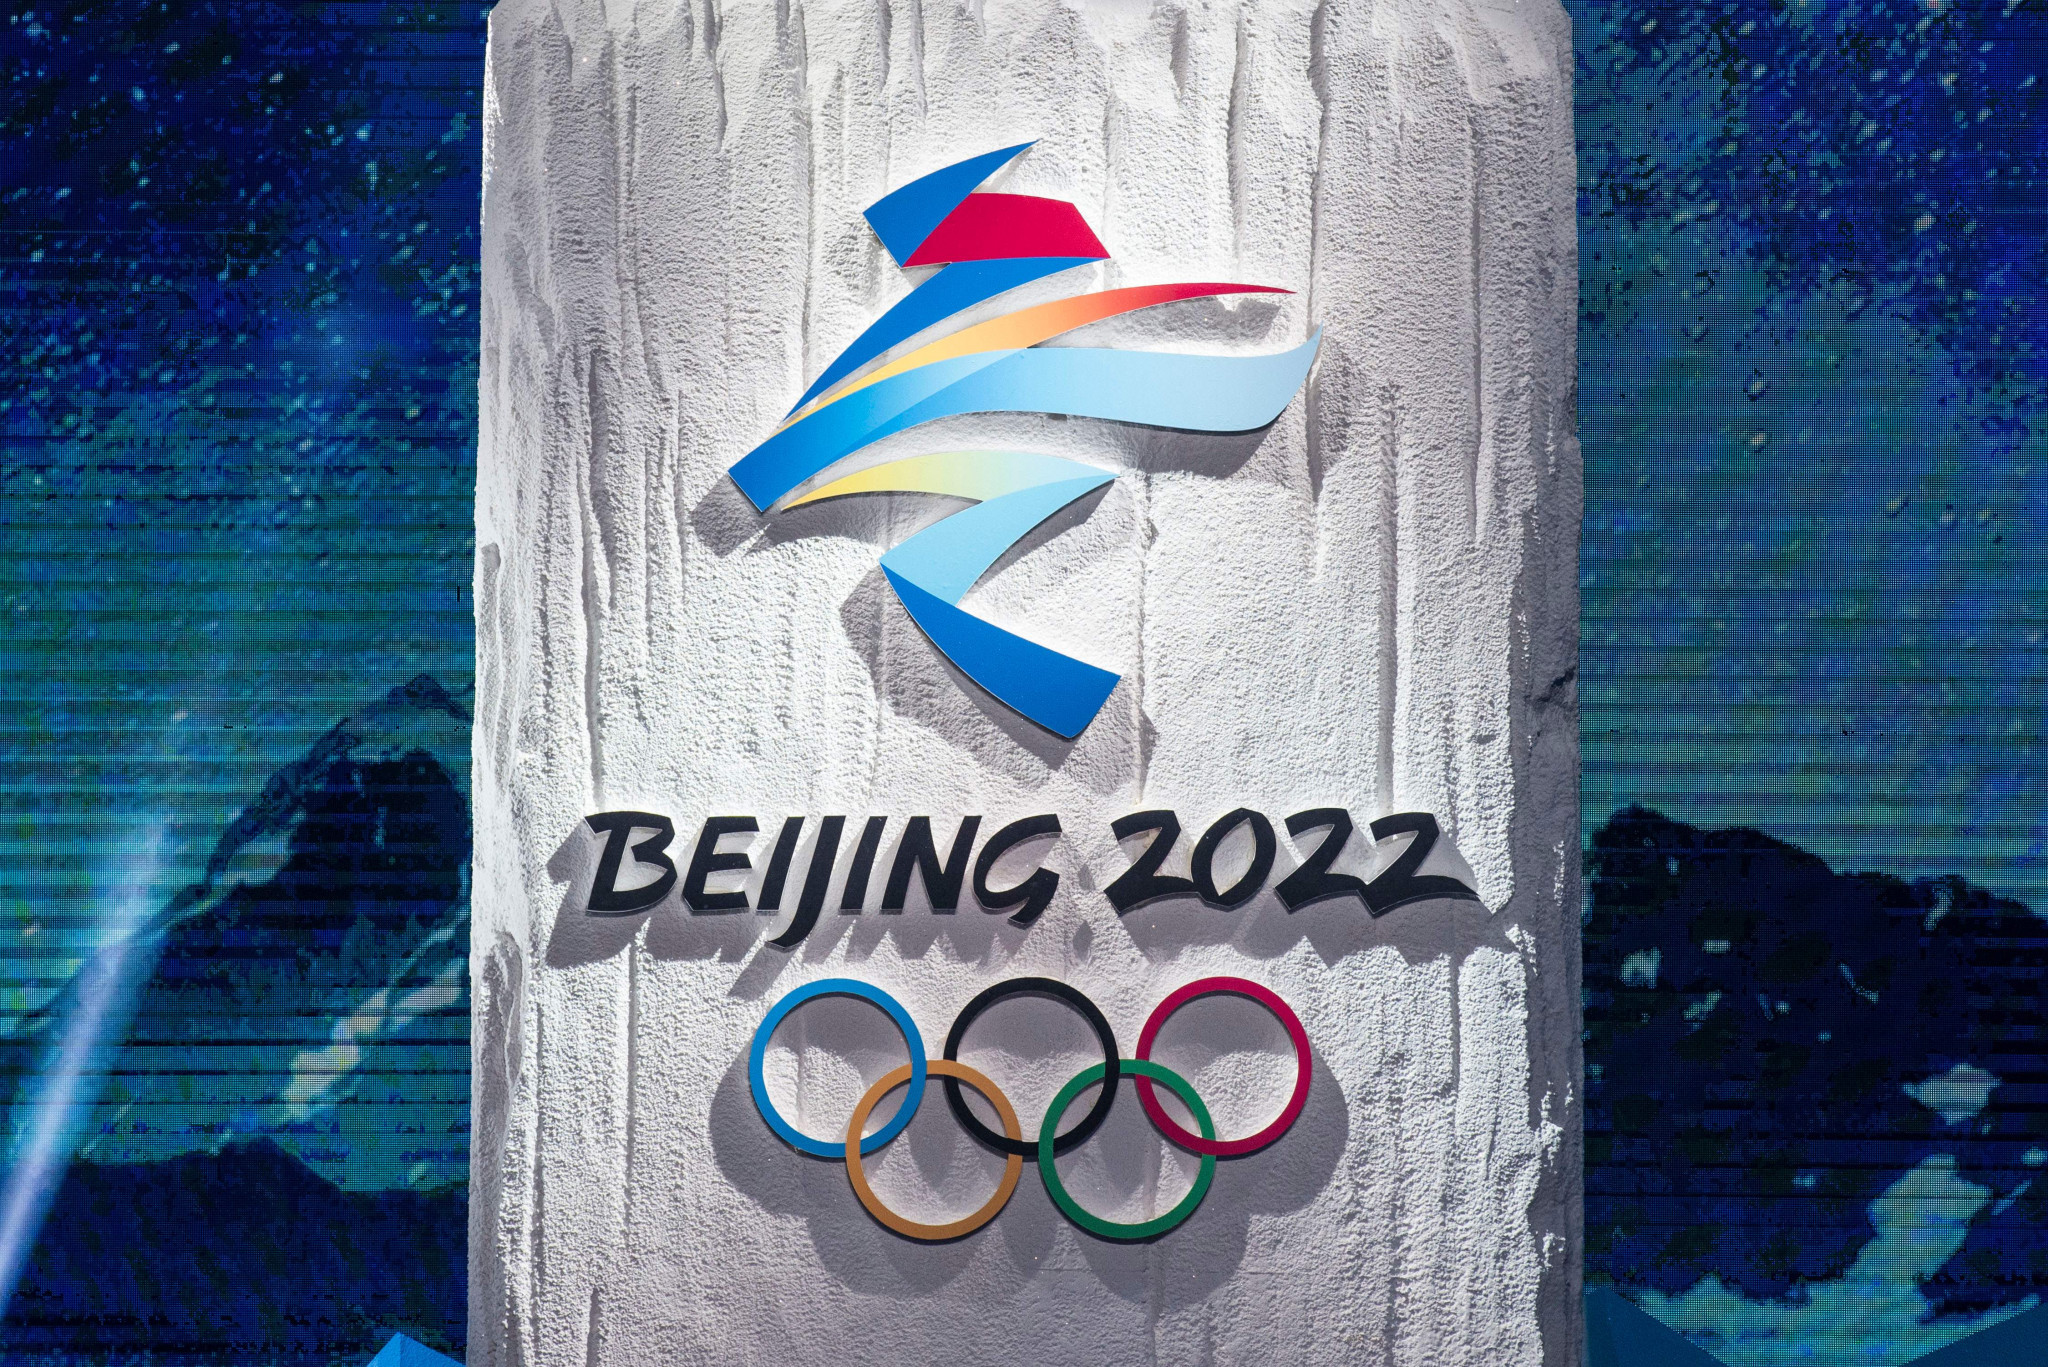 The Beijing 2022 logos were unveiled in December 2017 ©Getty Images